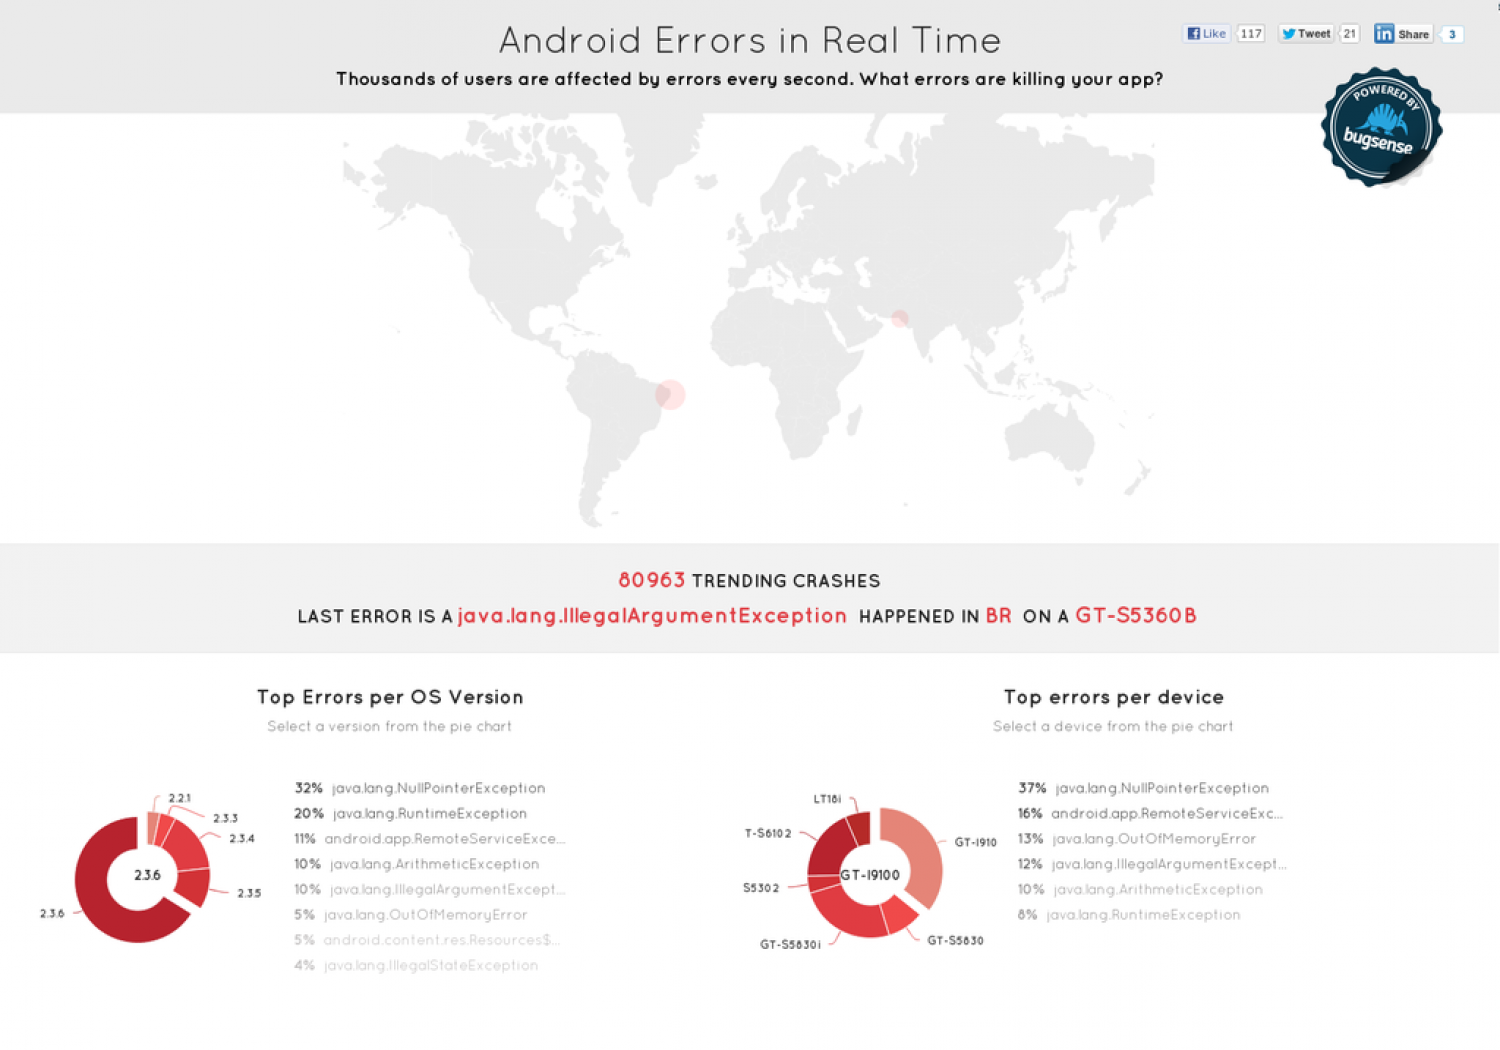 Android Errors in Real Time Infographic